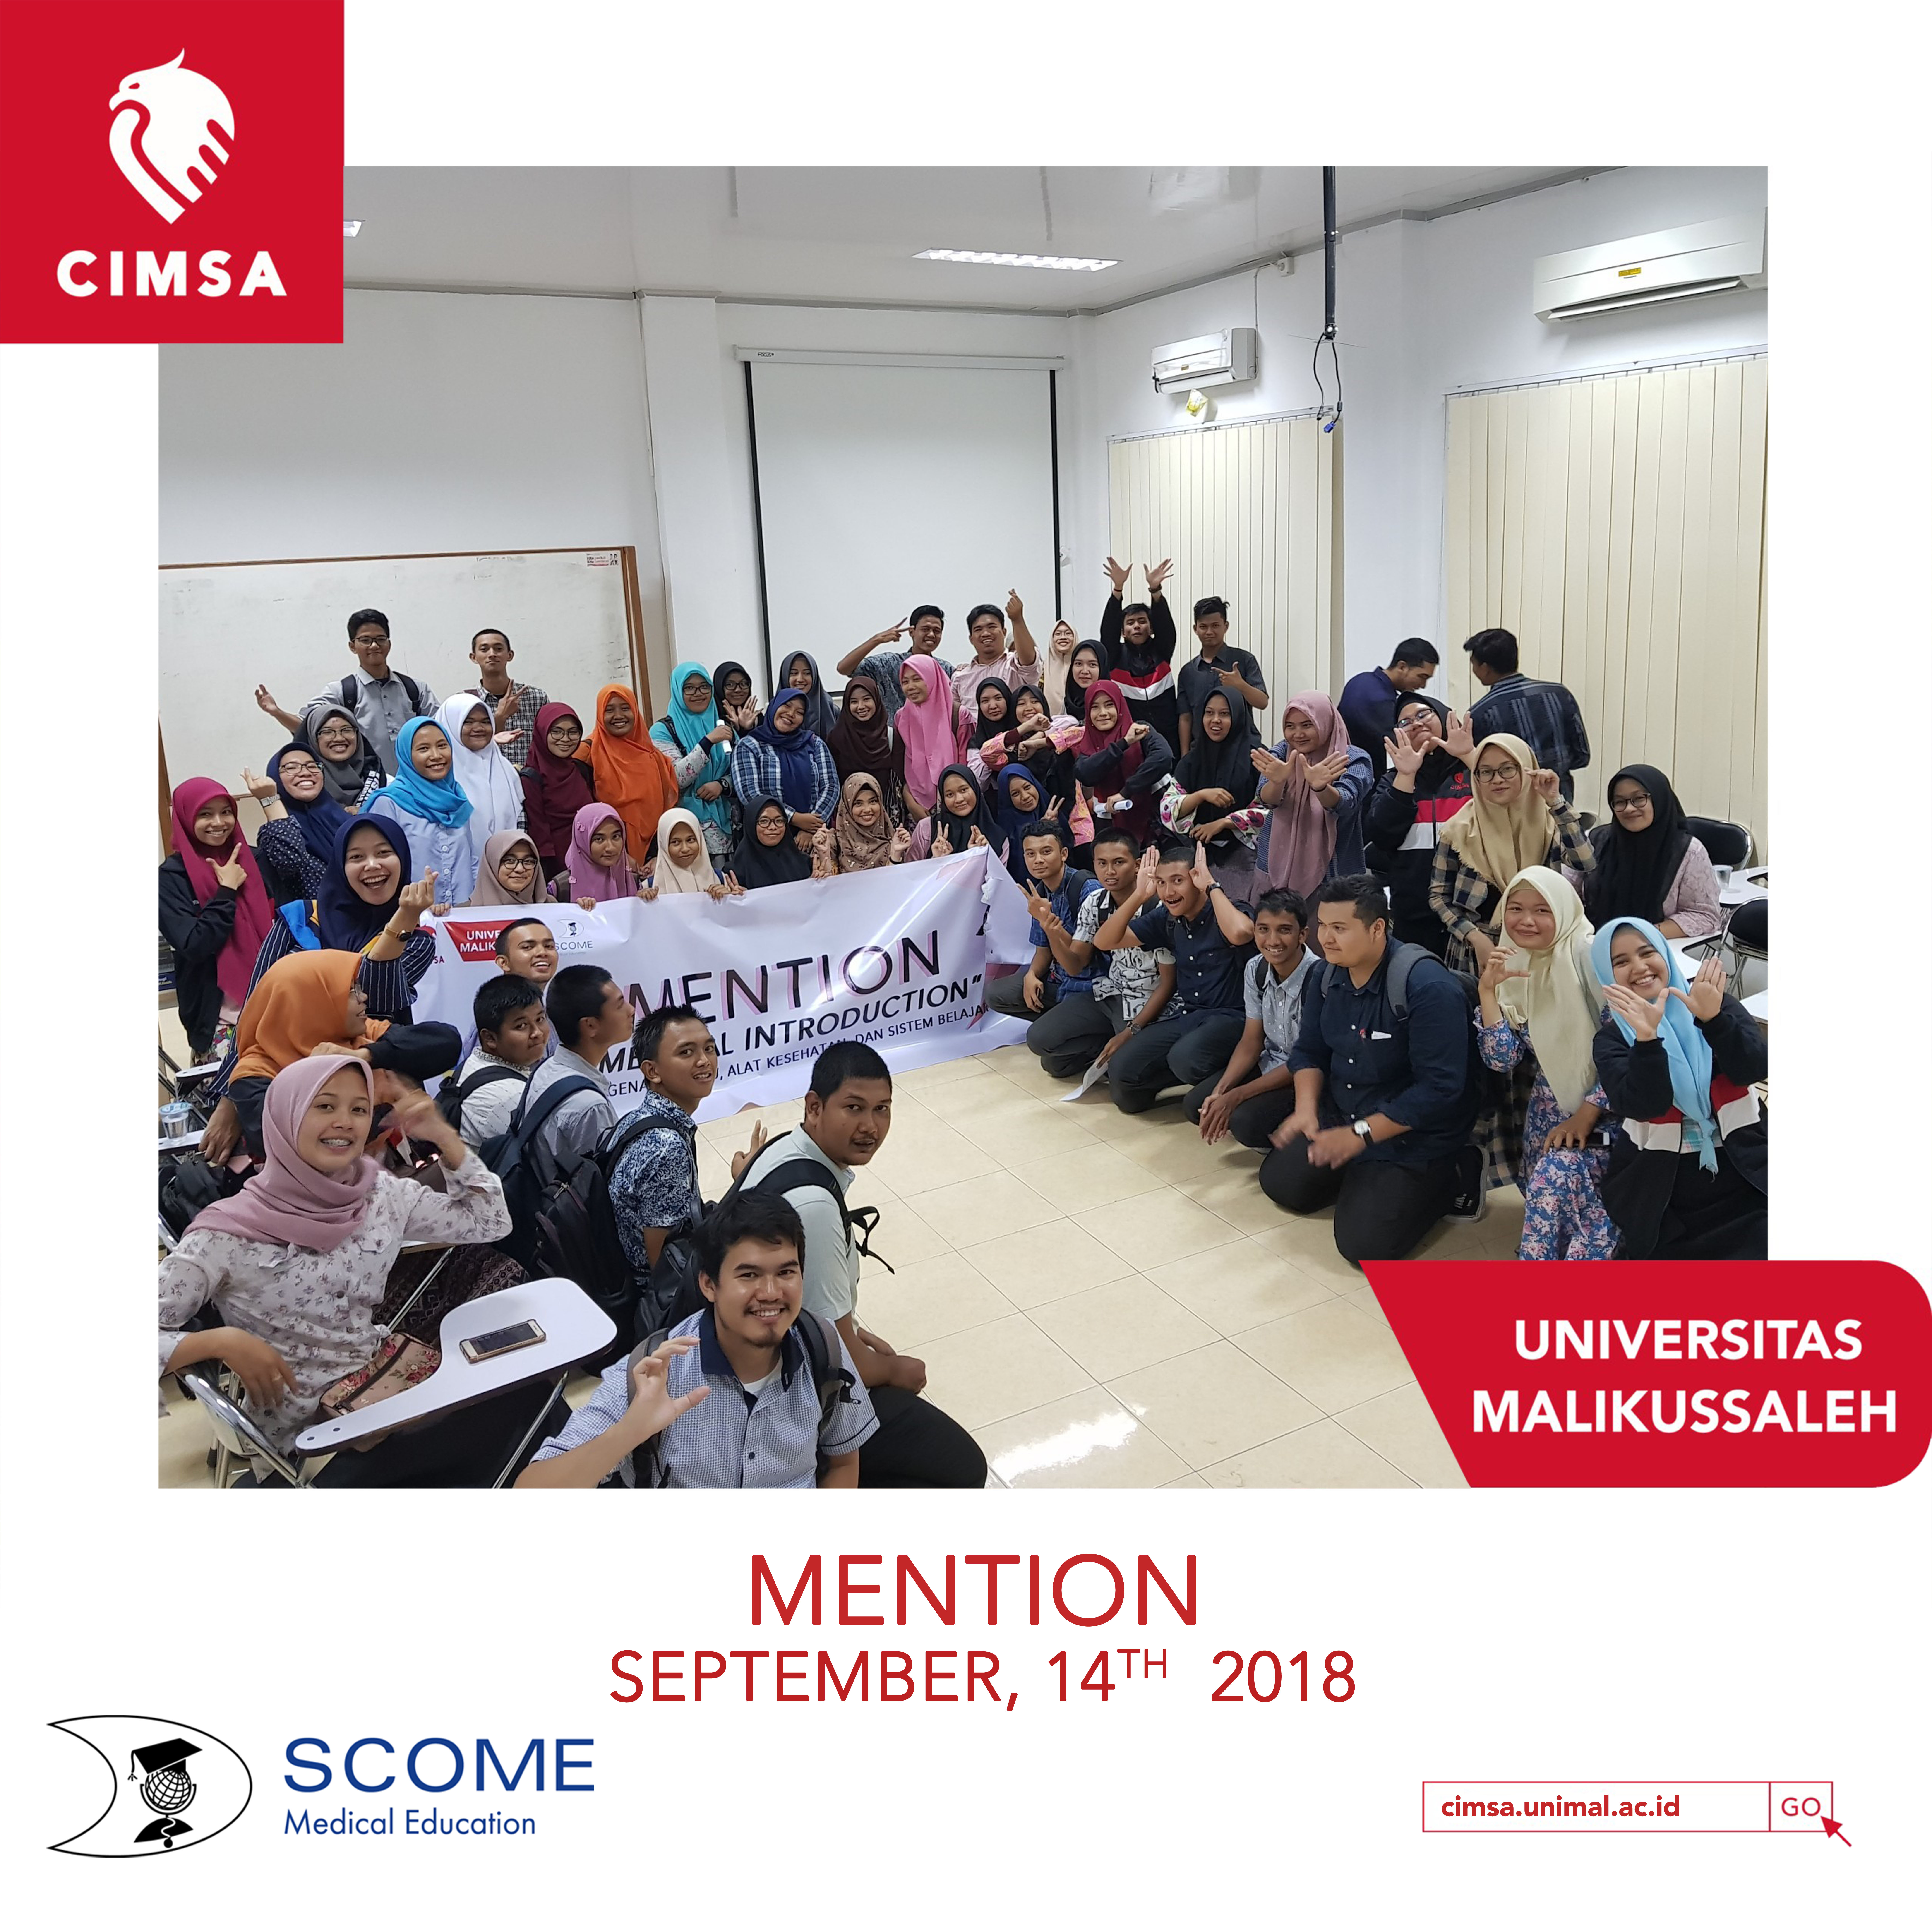 MENTION (Medical Introduction) by Universitas Malikussaleh